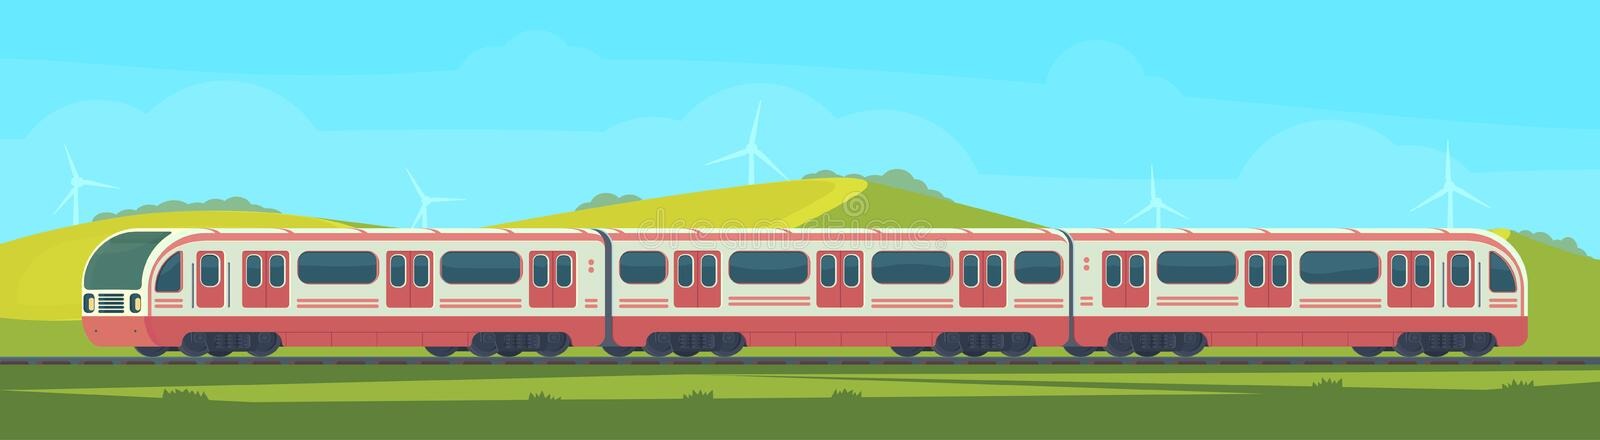 Passanger modern electric high-speed train with nature landscape in a hilly area. vector illustration